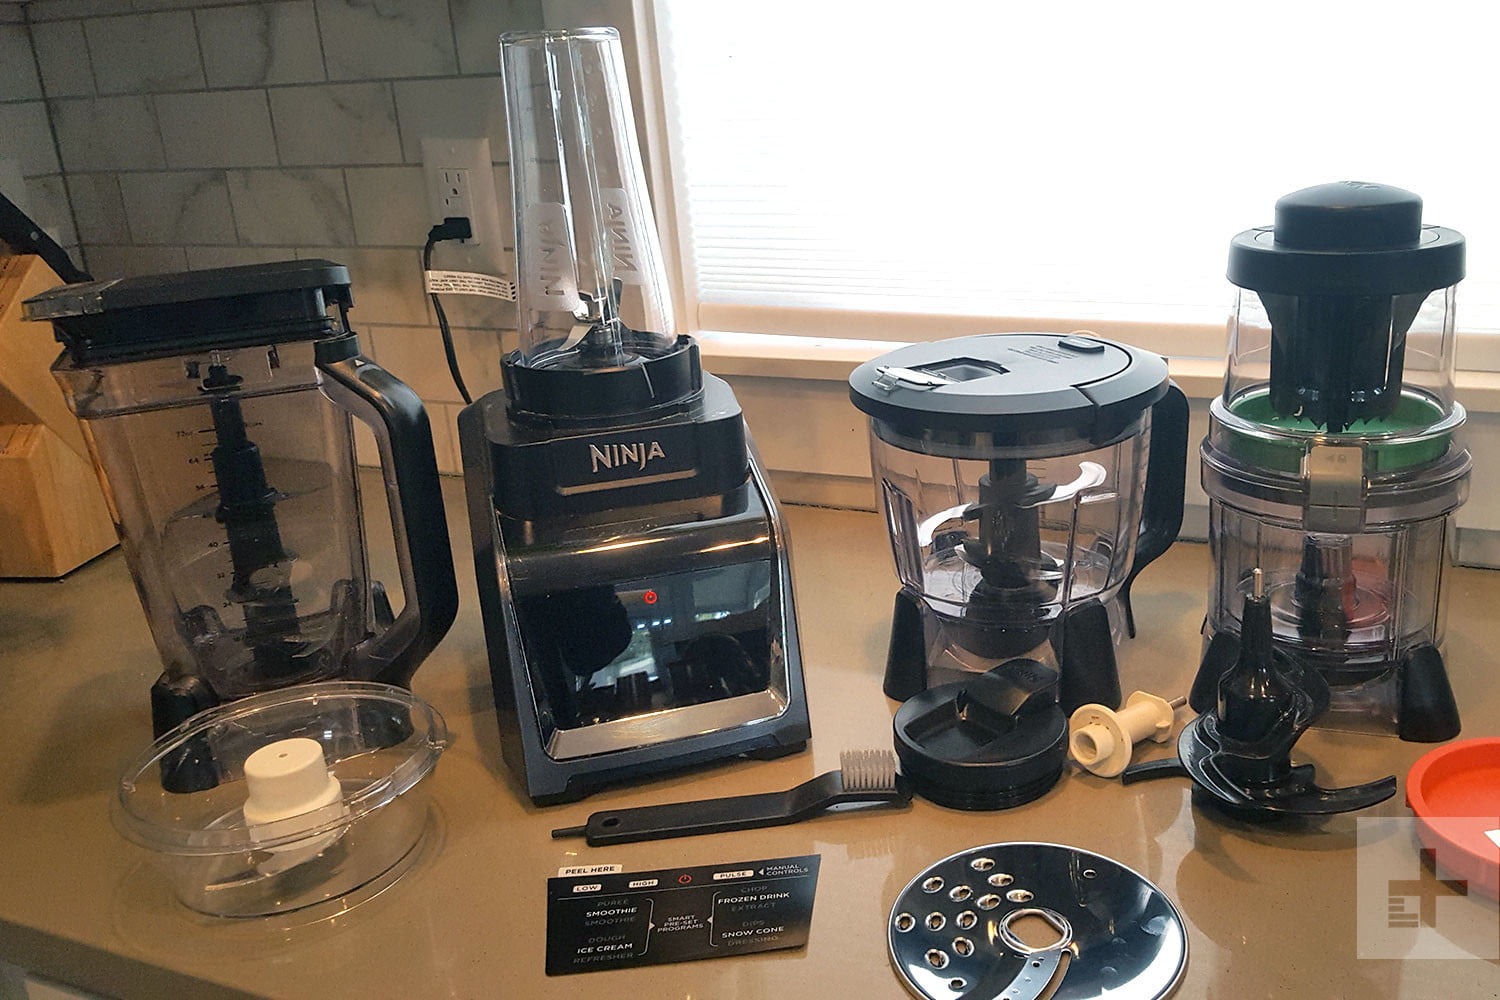 ninja blending all in spiralizer speed processor blender hero cup kitchen high products system